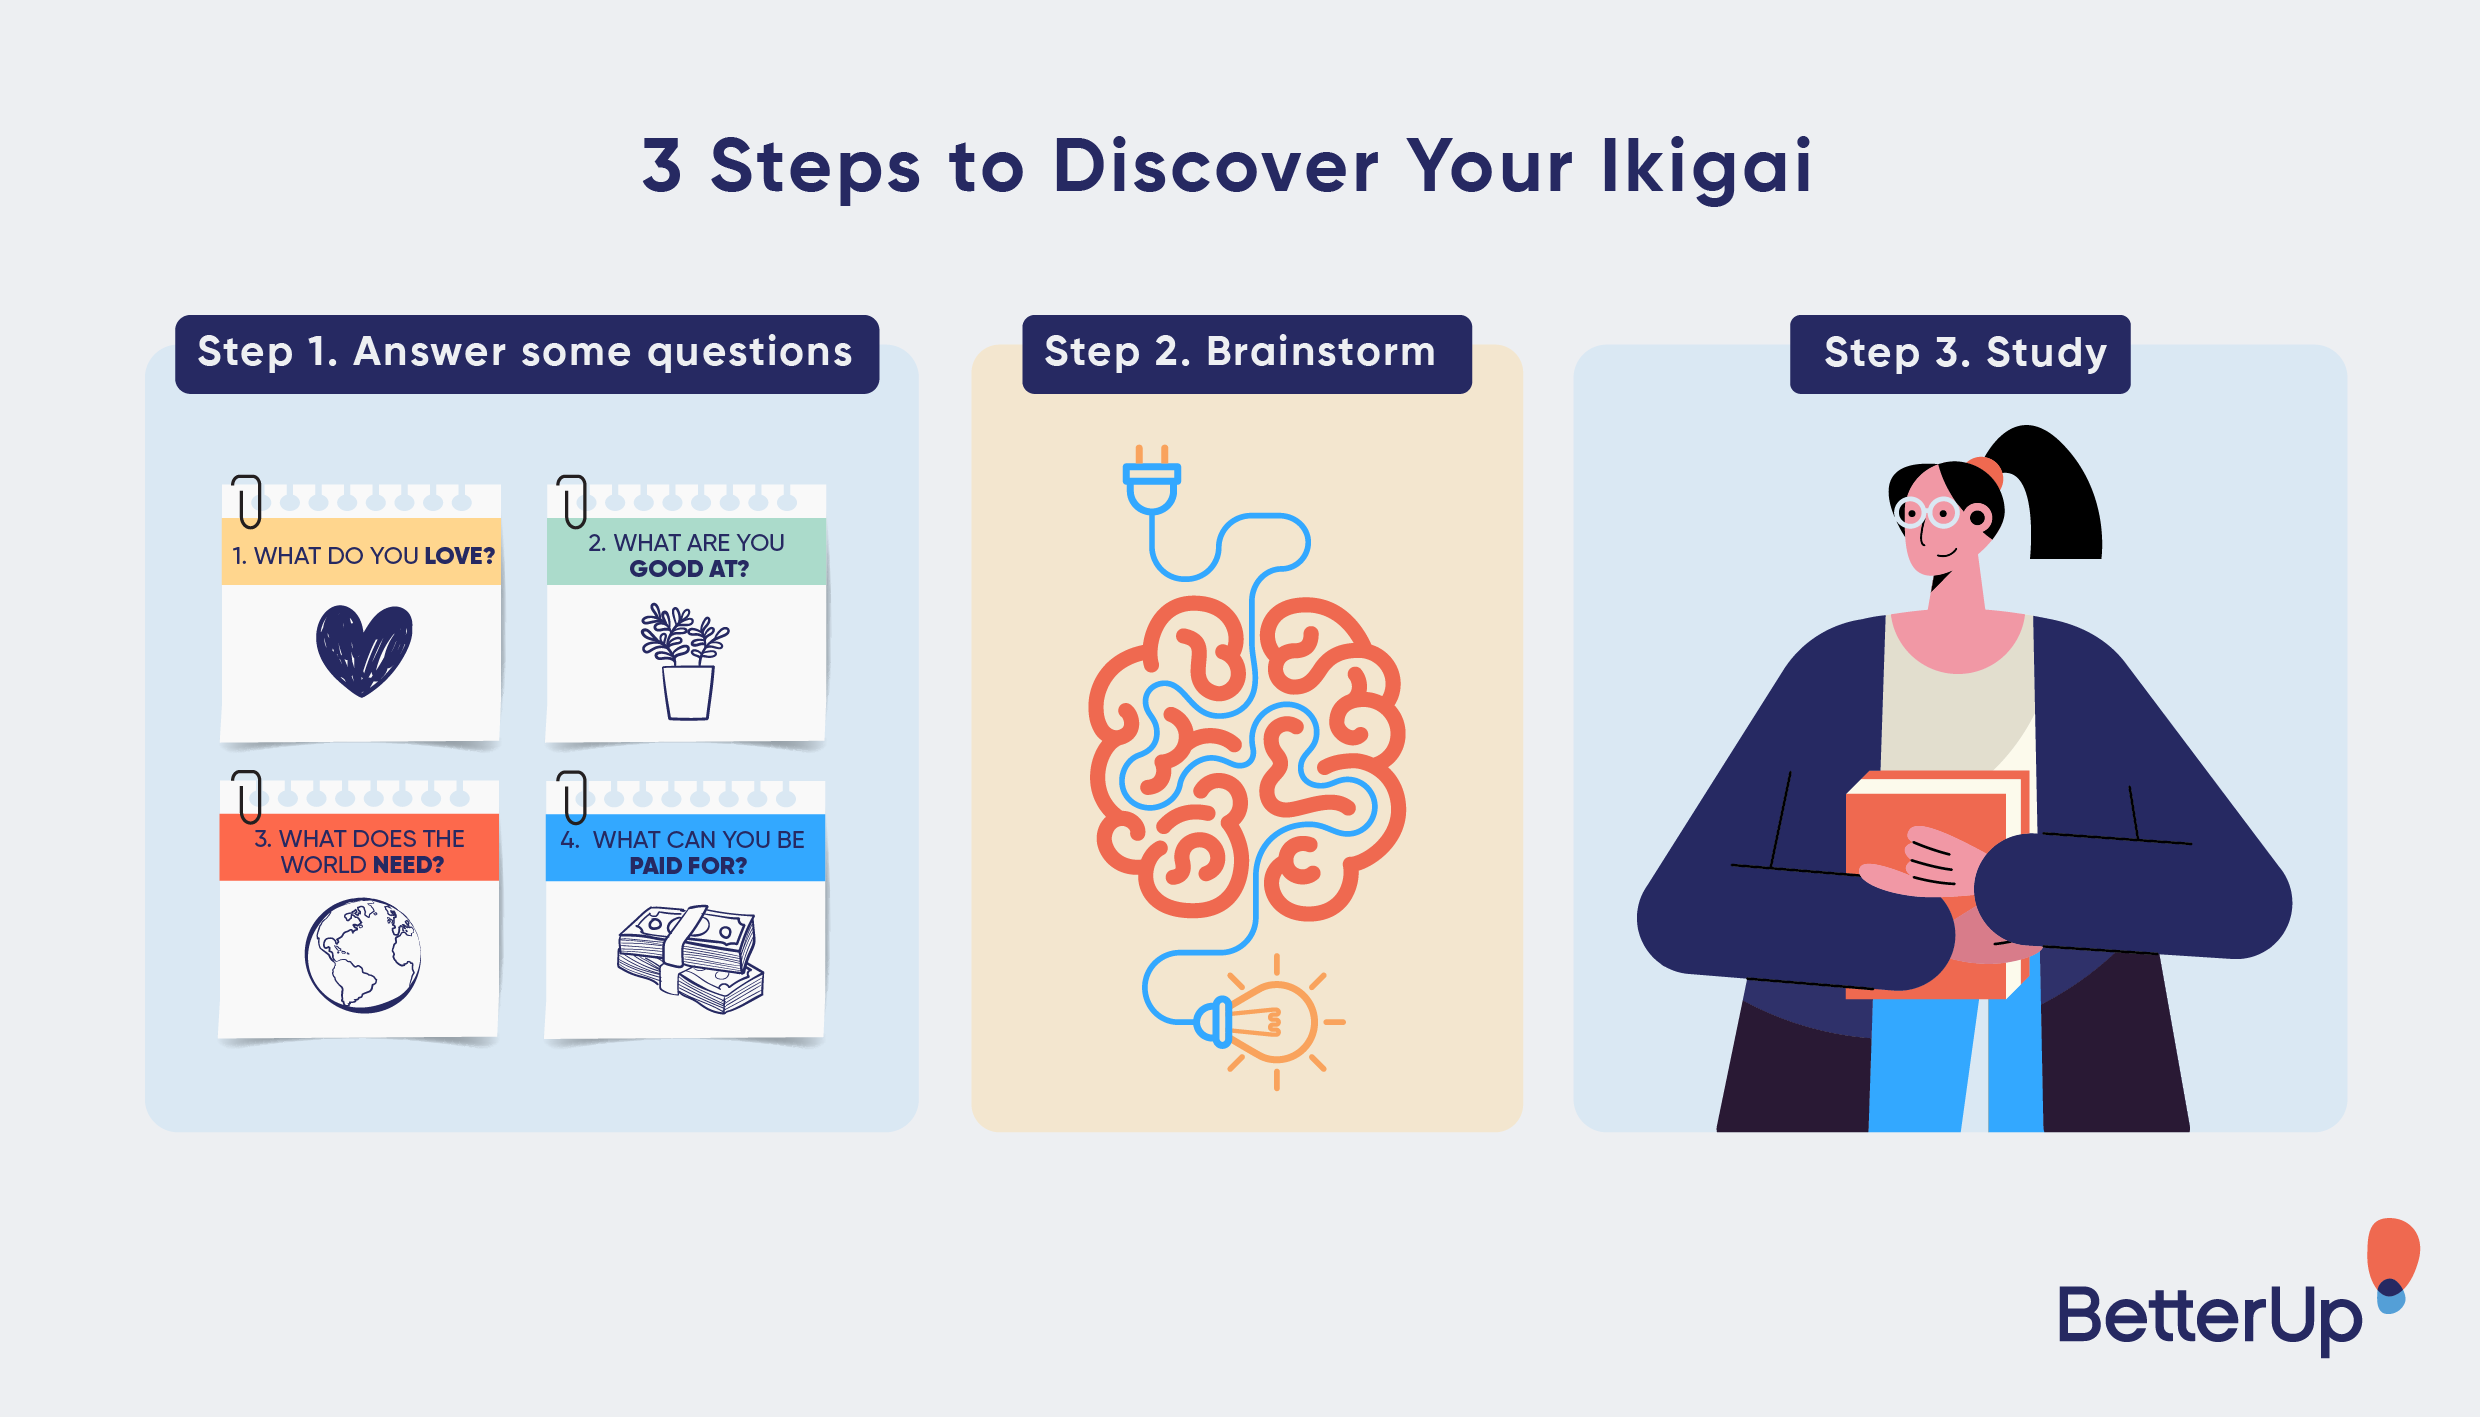 3 steps to discovering your ikigai